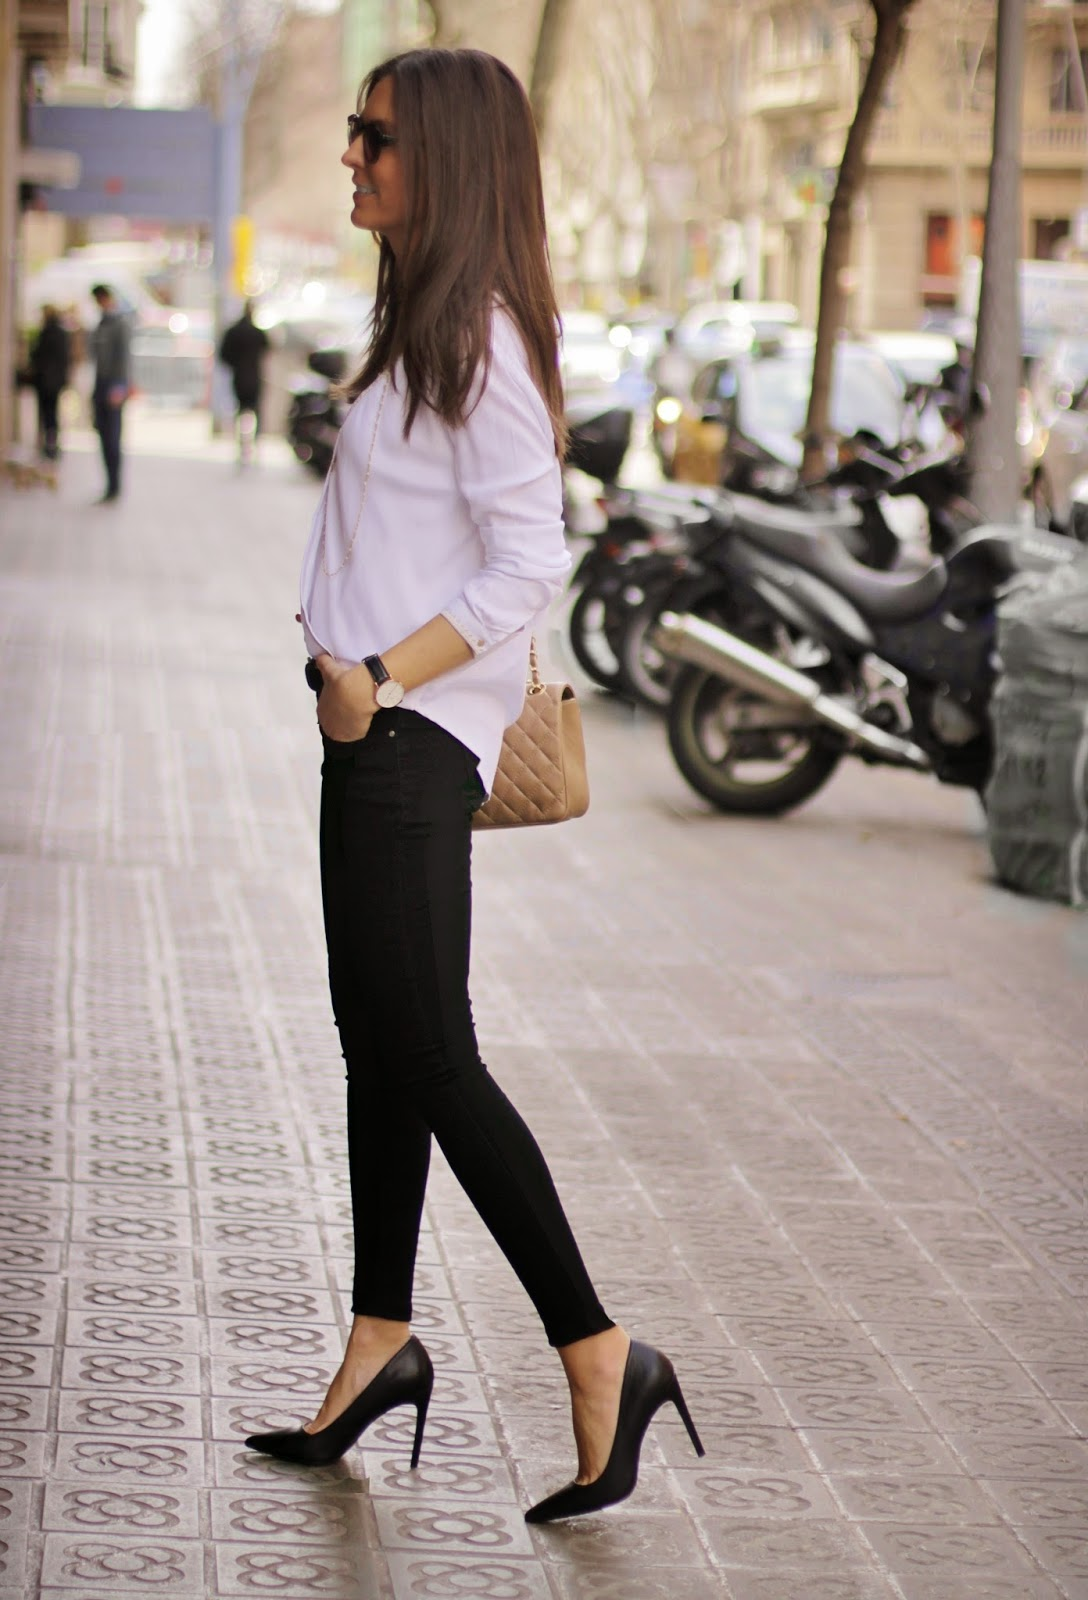 Sometimes you just need to keep it simple. Black And White Via Sandra Buisan, all clothing from 080 Chic